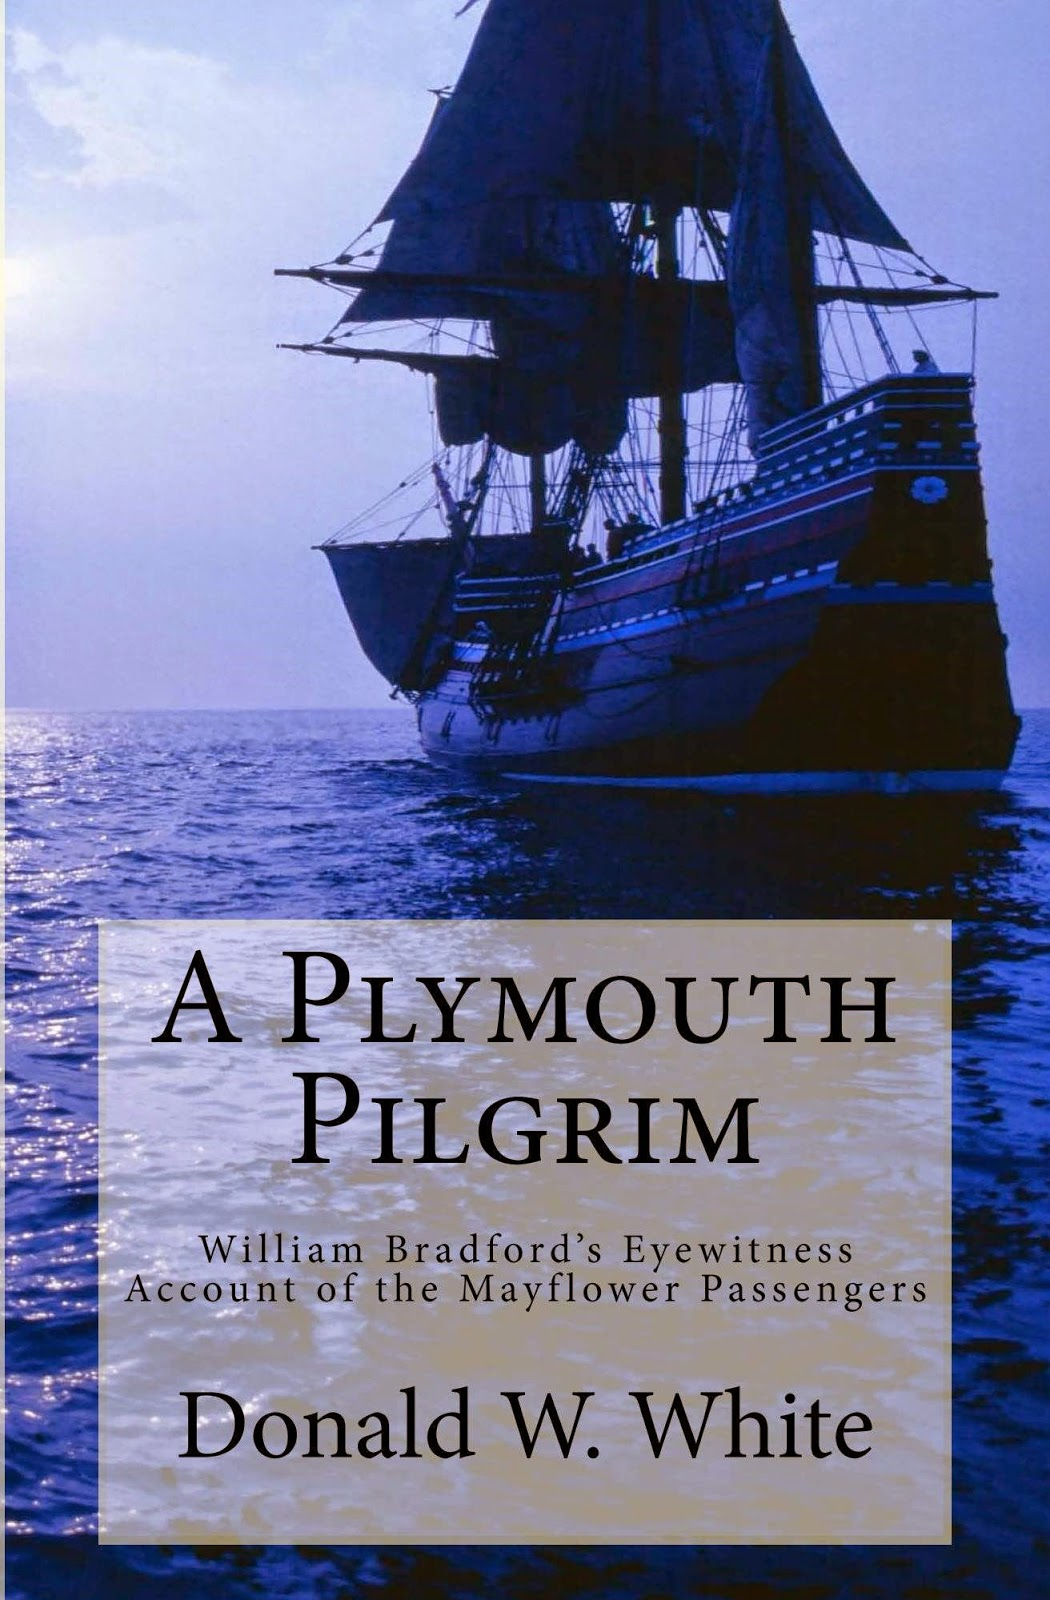 A Plymouth Pilgrim, by Donald W. White